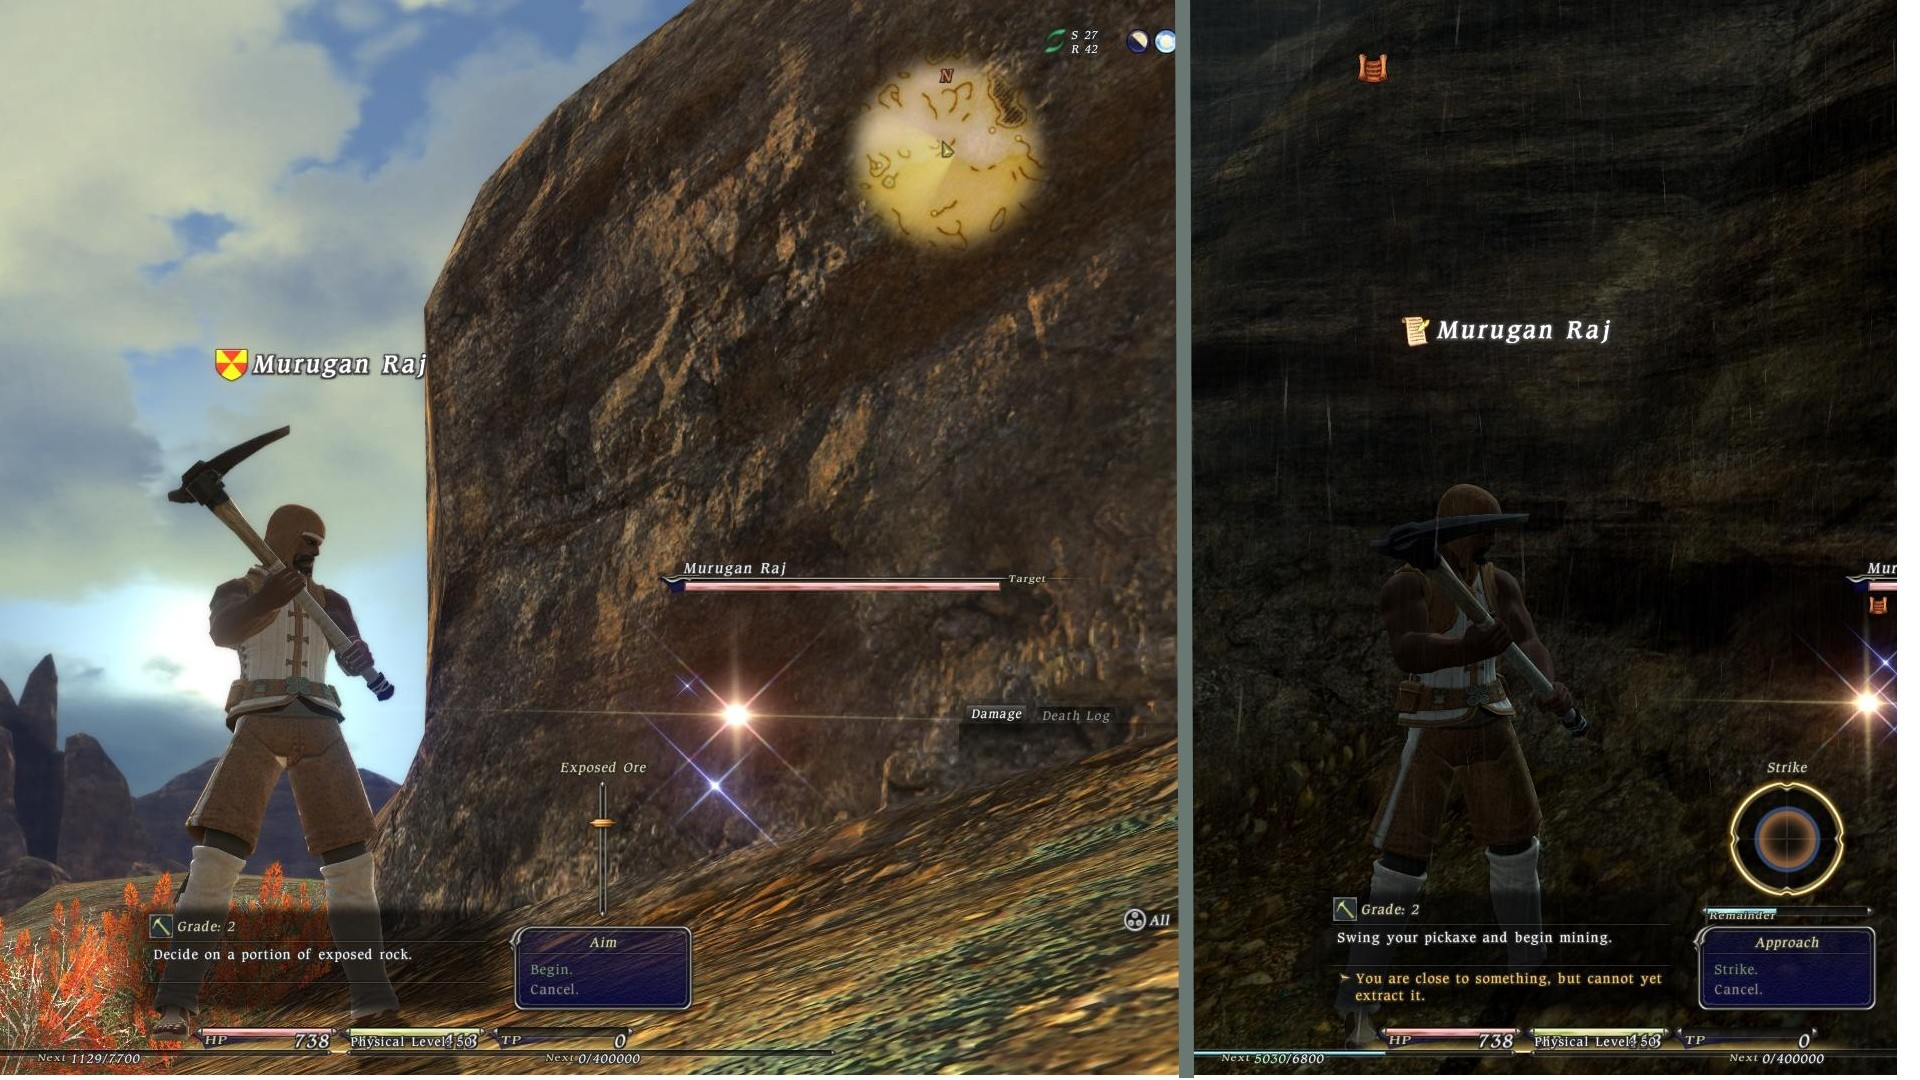 Final Fantasy XIV: Heavensward - Mining in FFXIV. Step 1: Aim at a spot (successful attempts give hints at location of certain materials), Step 2: Hot and cold minigame